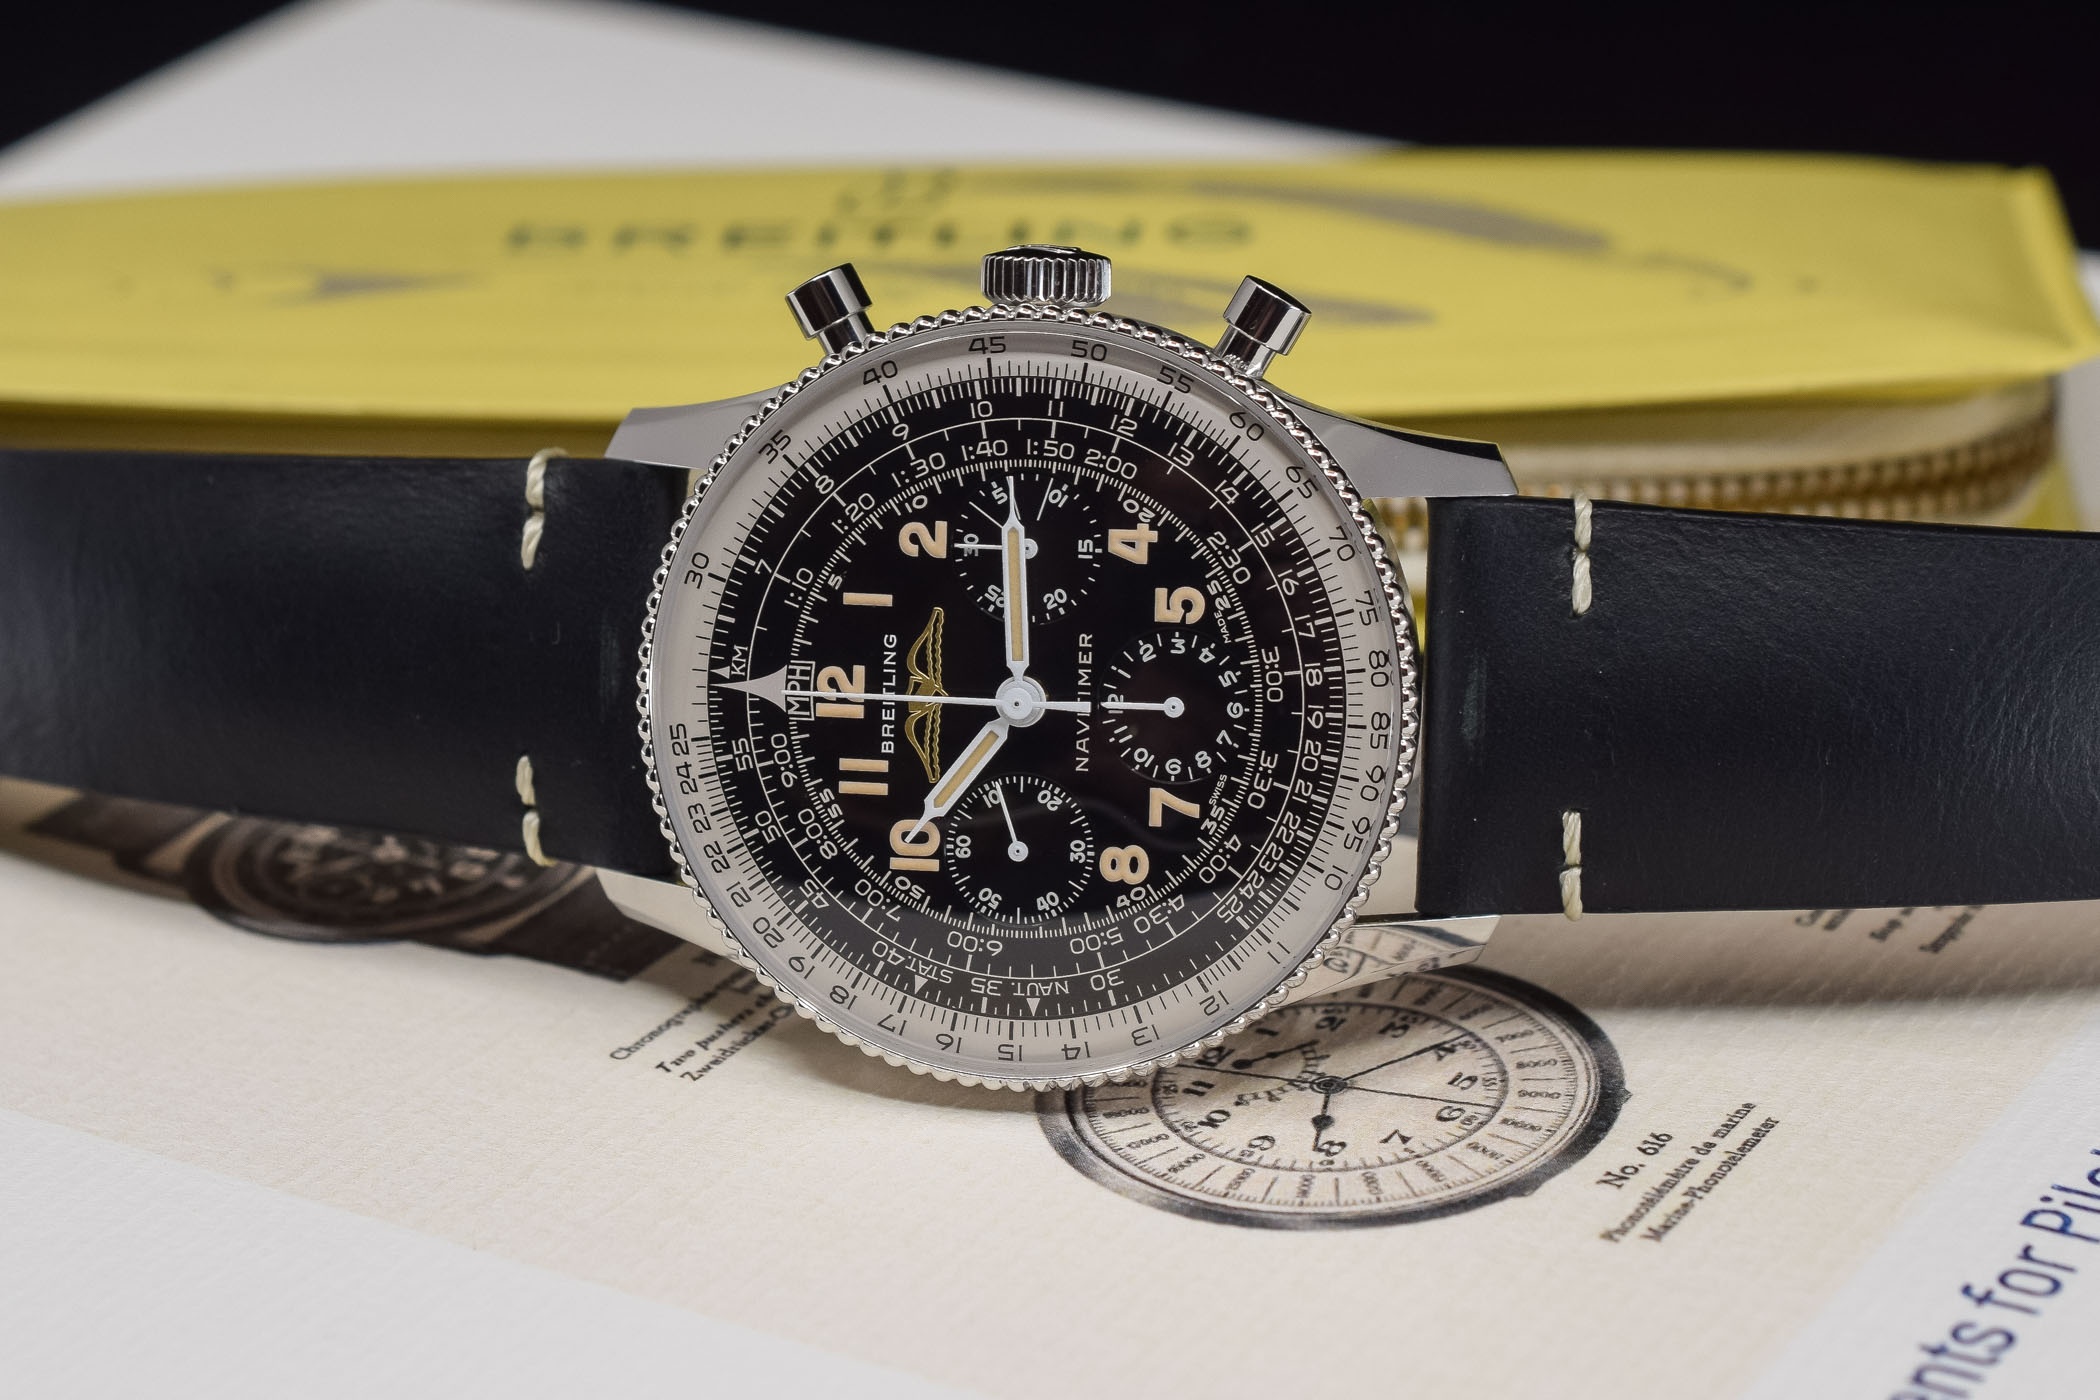 Breitling Navitimer Ref 806 1959 Re‑Edition - review - 7